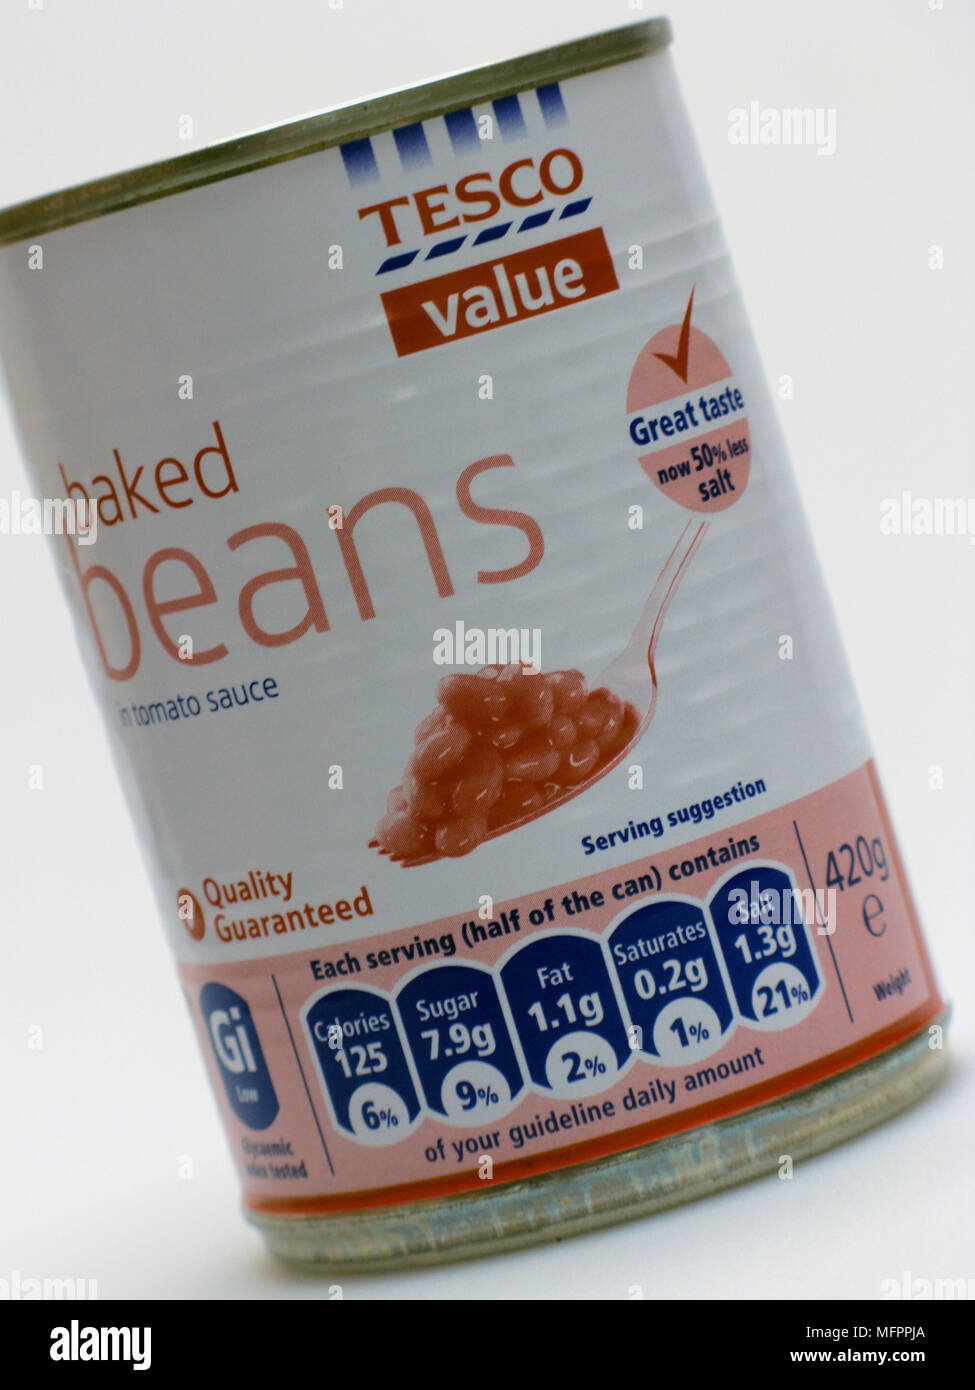 Tesco Value Baked Beans Products Of A Cheap Reasonable